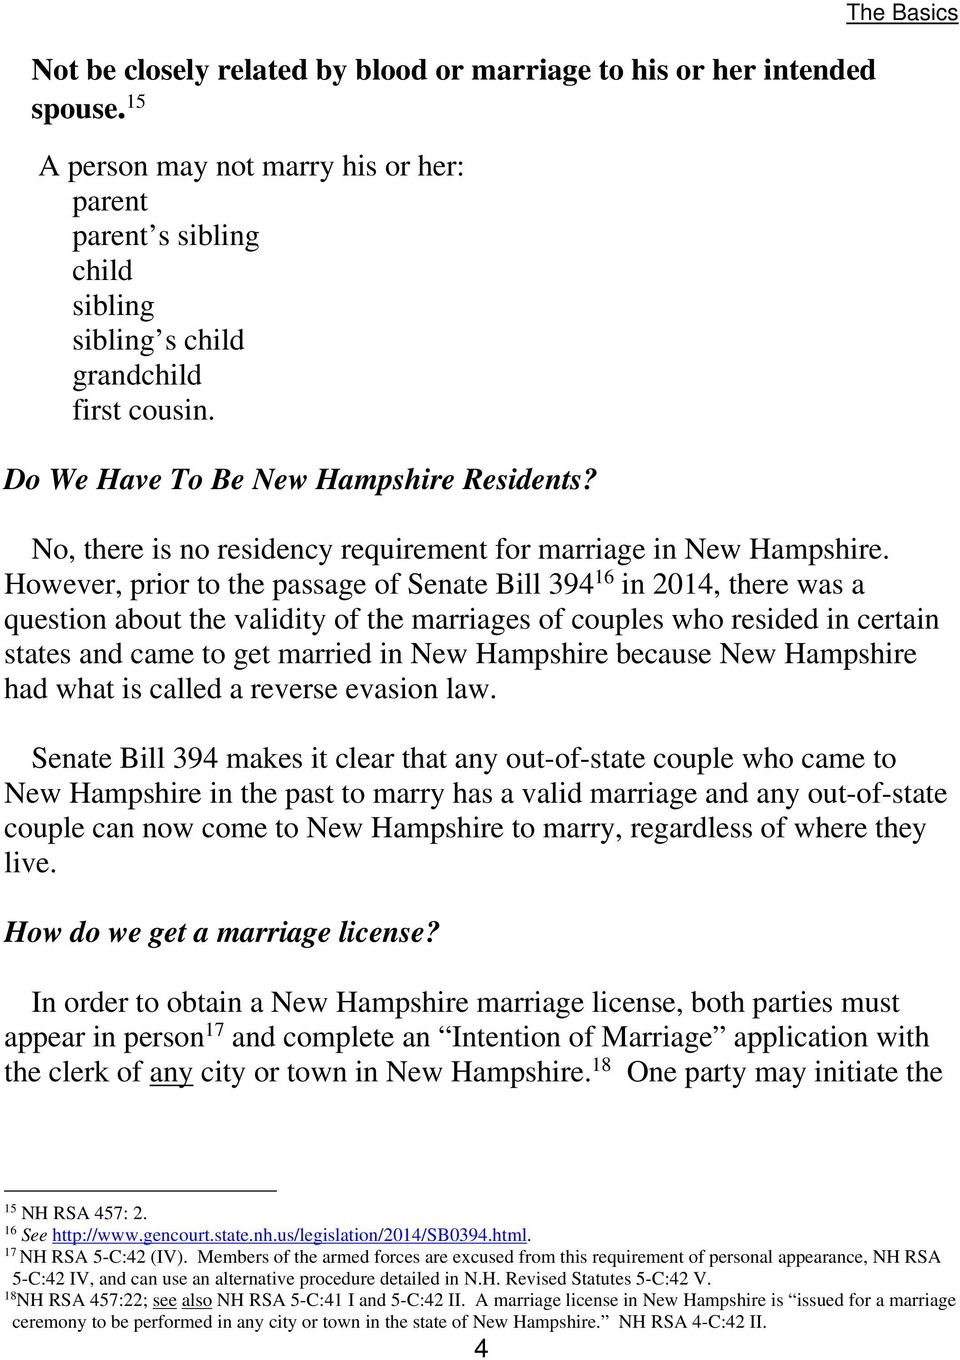 However, prior to the passage of Senate Bill 394 16 in 2014, there was a question about the validity of the marriages of couples who resided in certain states and came to get married in New Hampshire